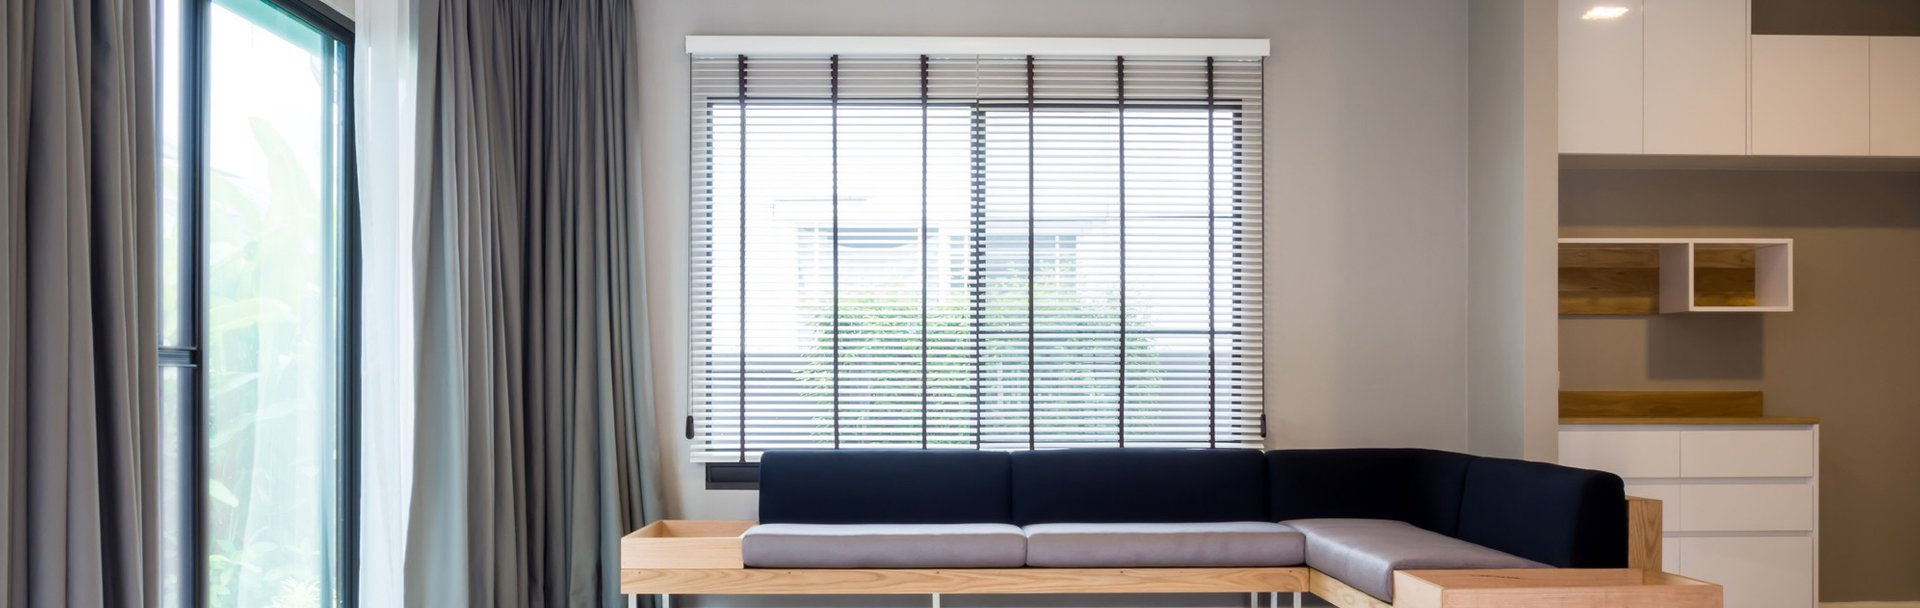 workhouse custom care blind repairs magic home covering blinds repair window edmonton